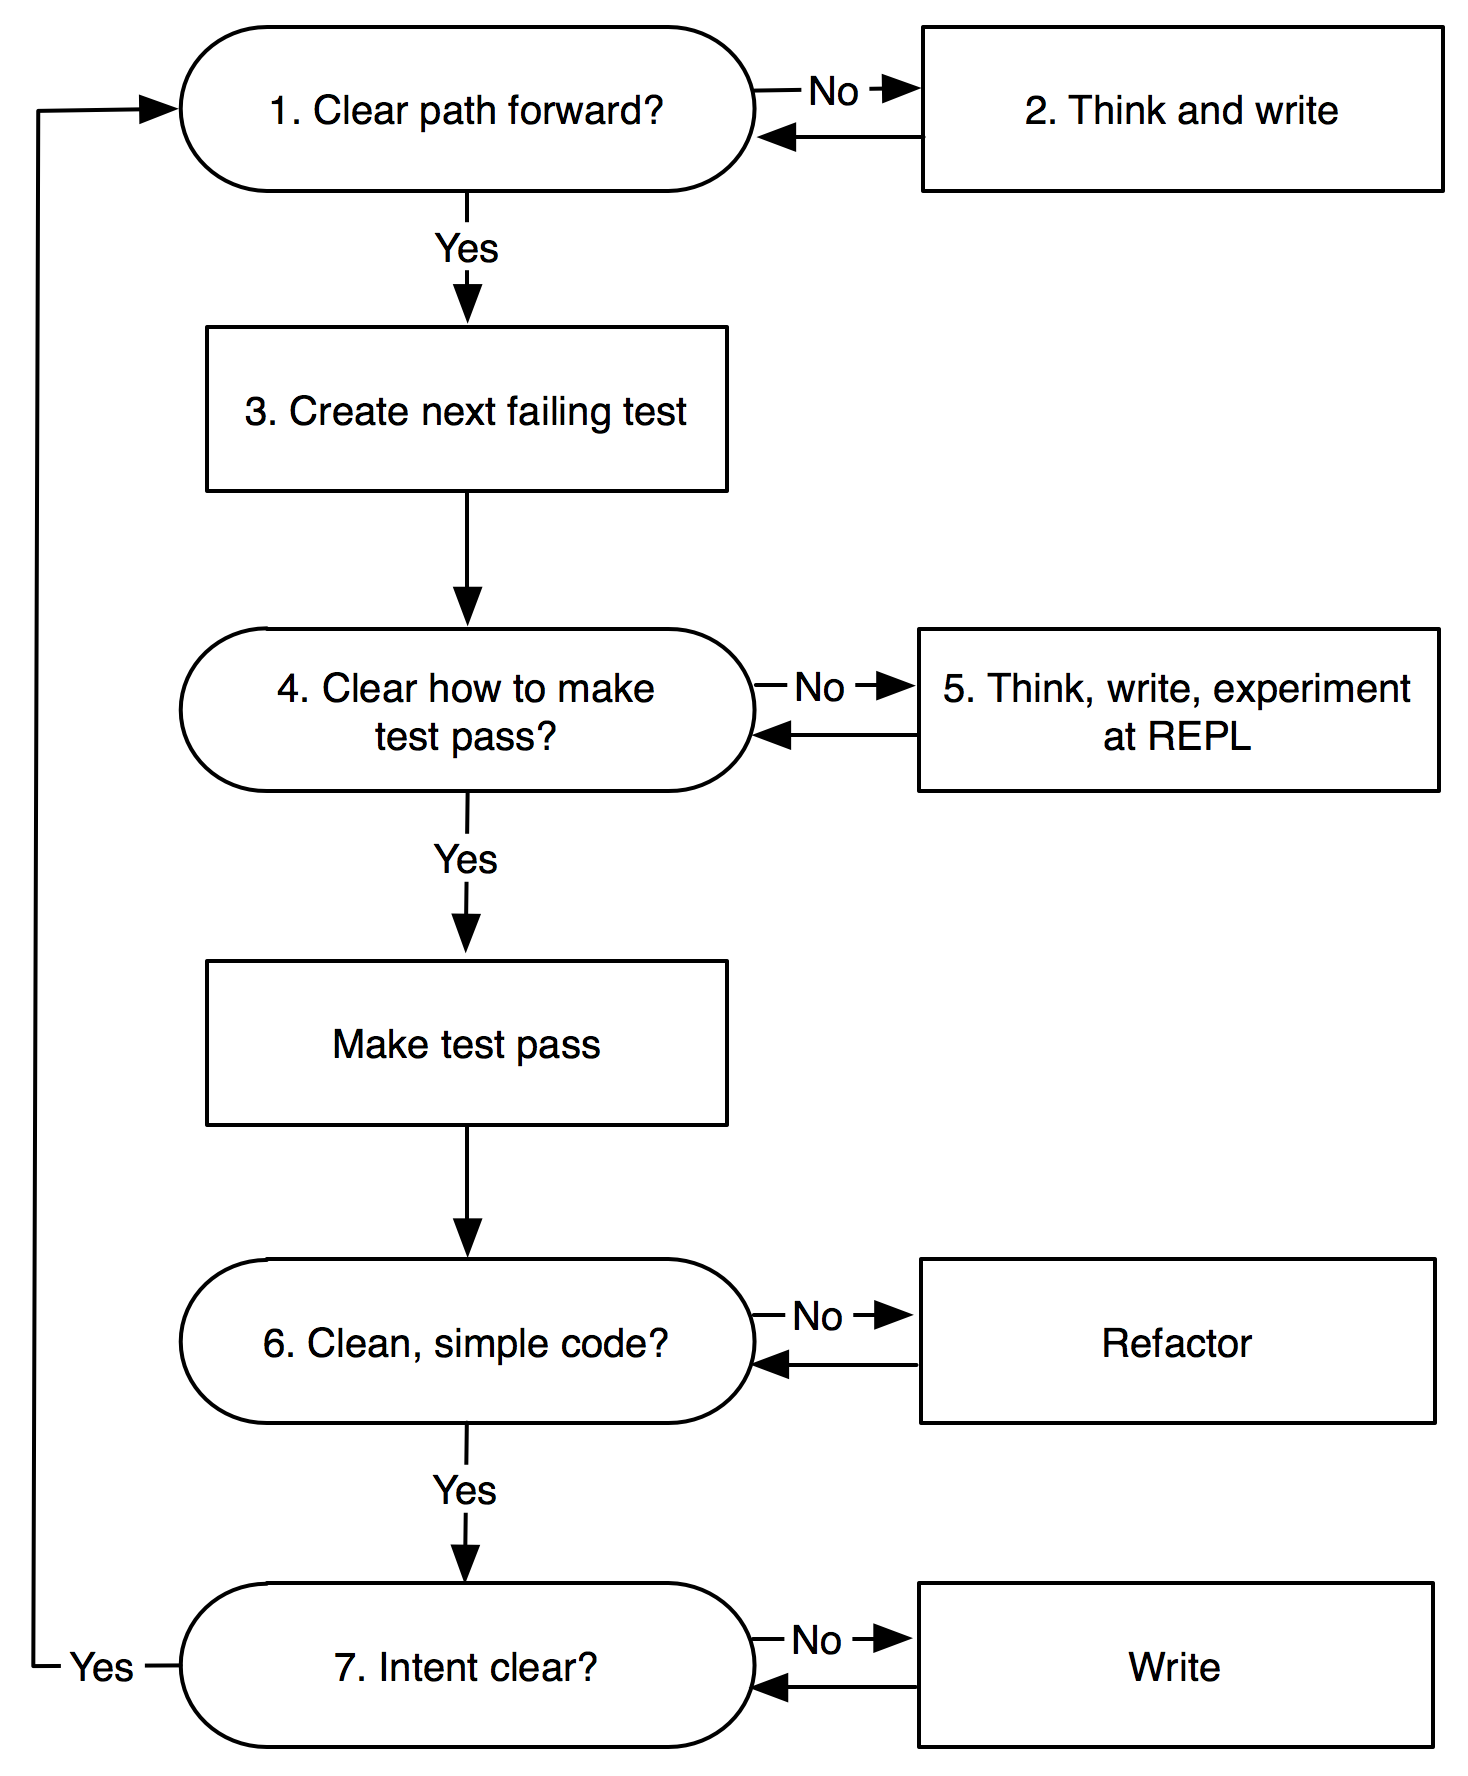 Workflow, as a flow chart